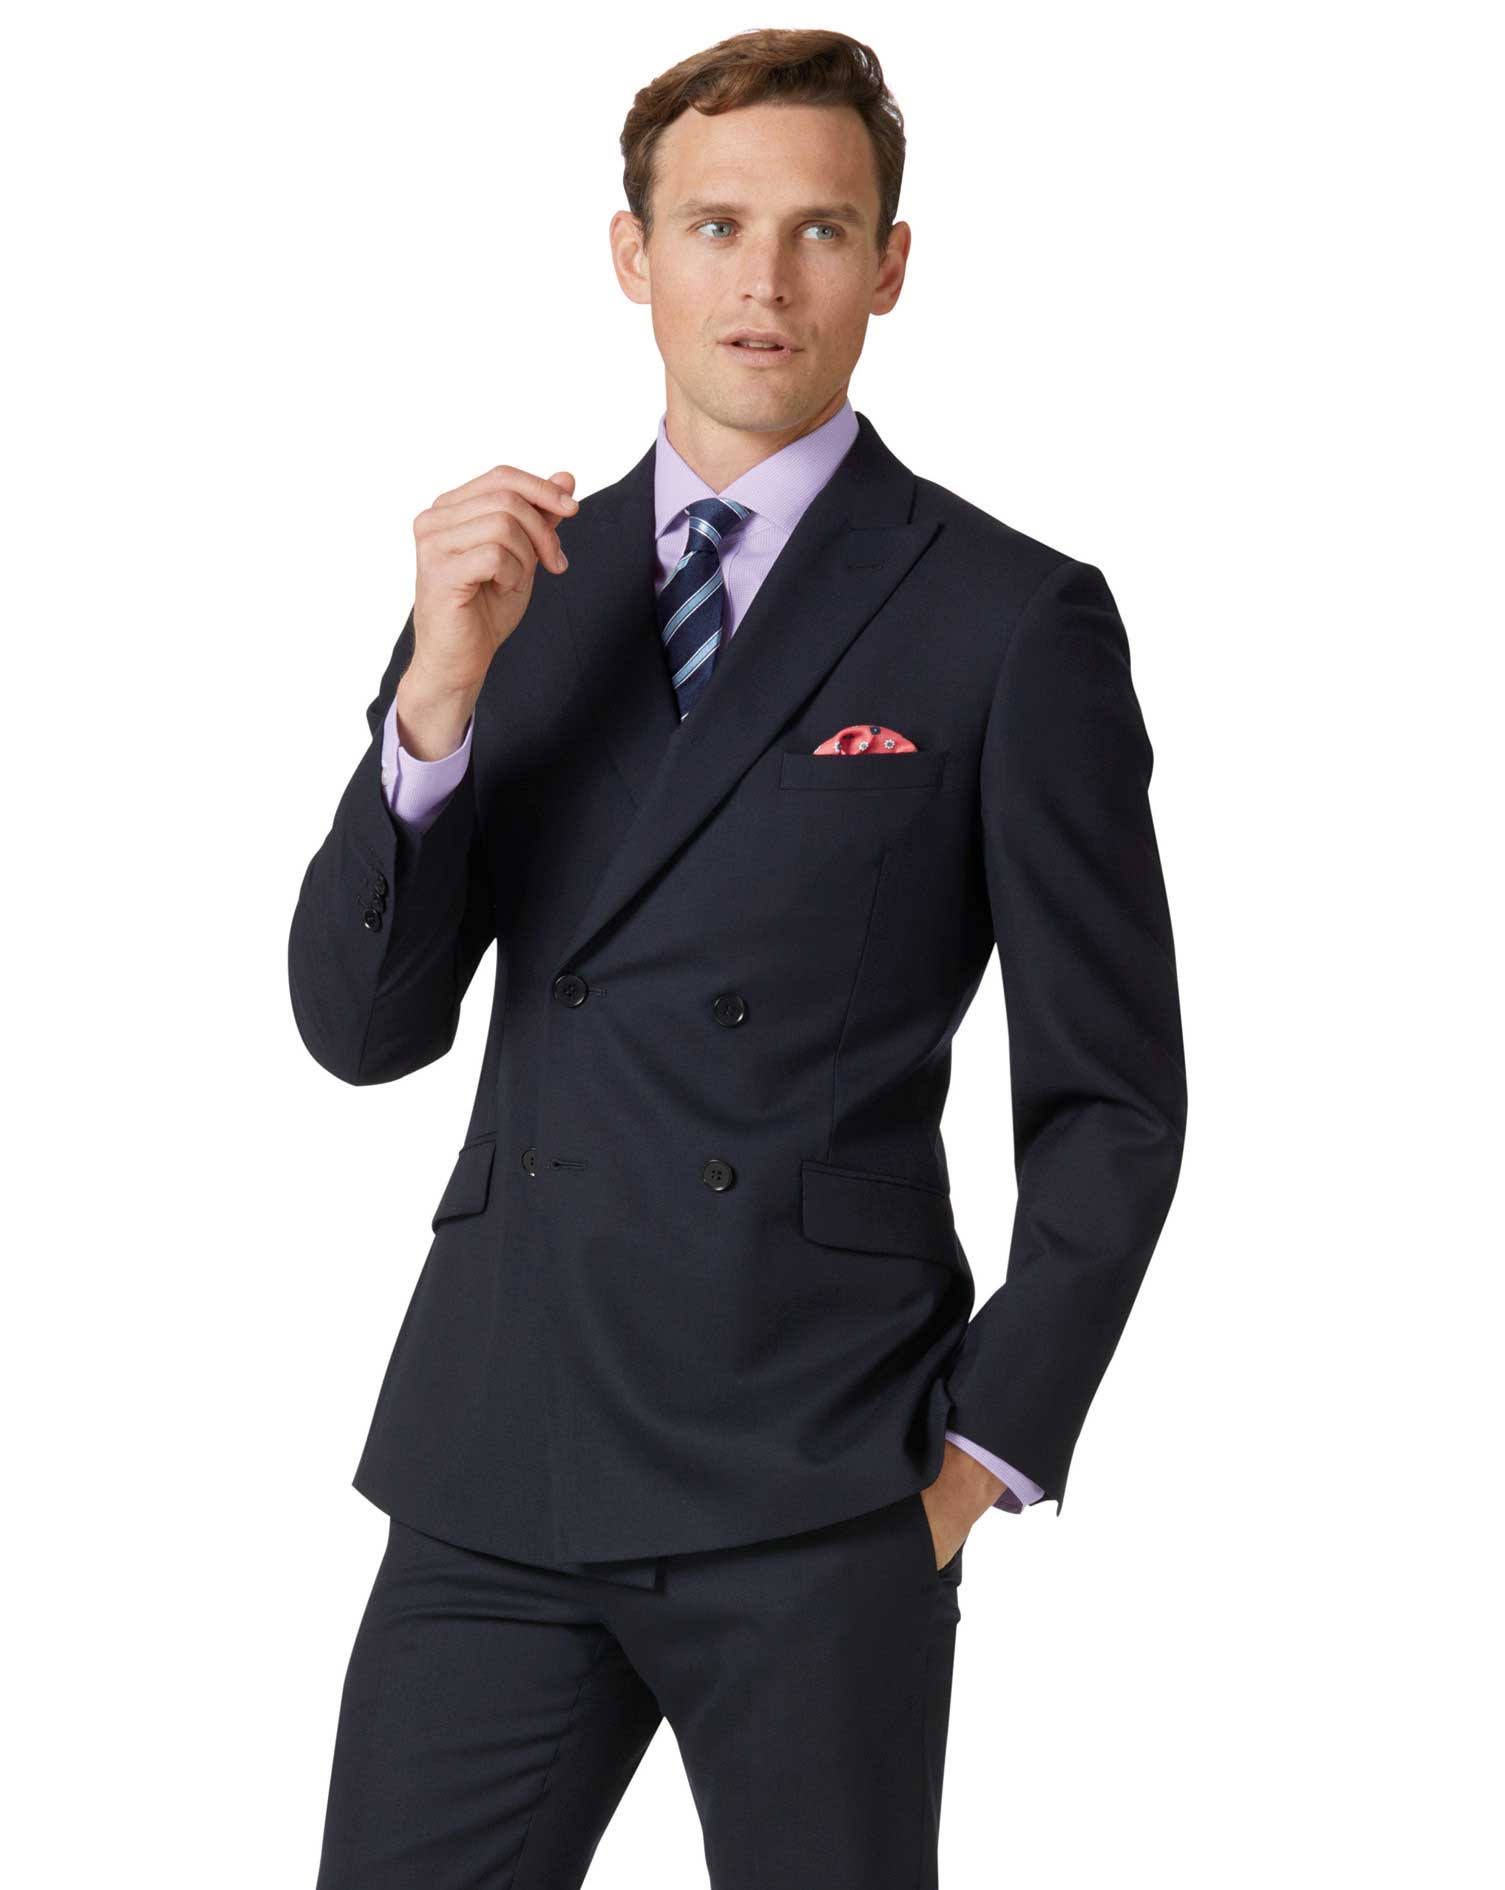 Midnight Blue Double Breasted Slim Fit Merino Business Suit Wool Jacket Size 40 Long by Charles Tyrw